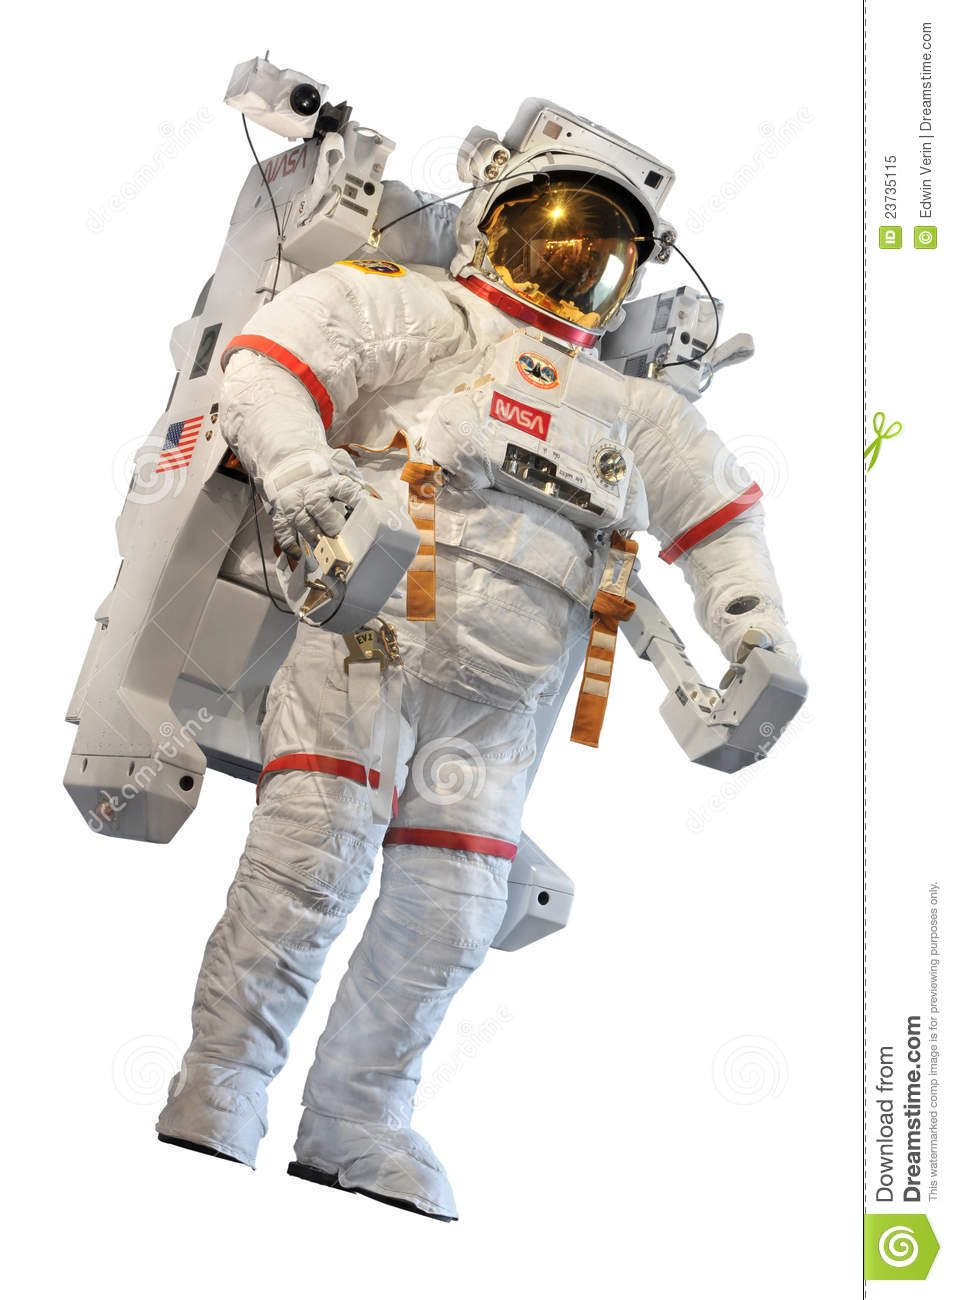 nasa s astronaut s space suit editorial image image space shuttle clip art with colorful fumes space shuttle clip art transparent